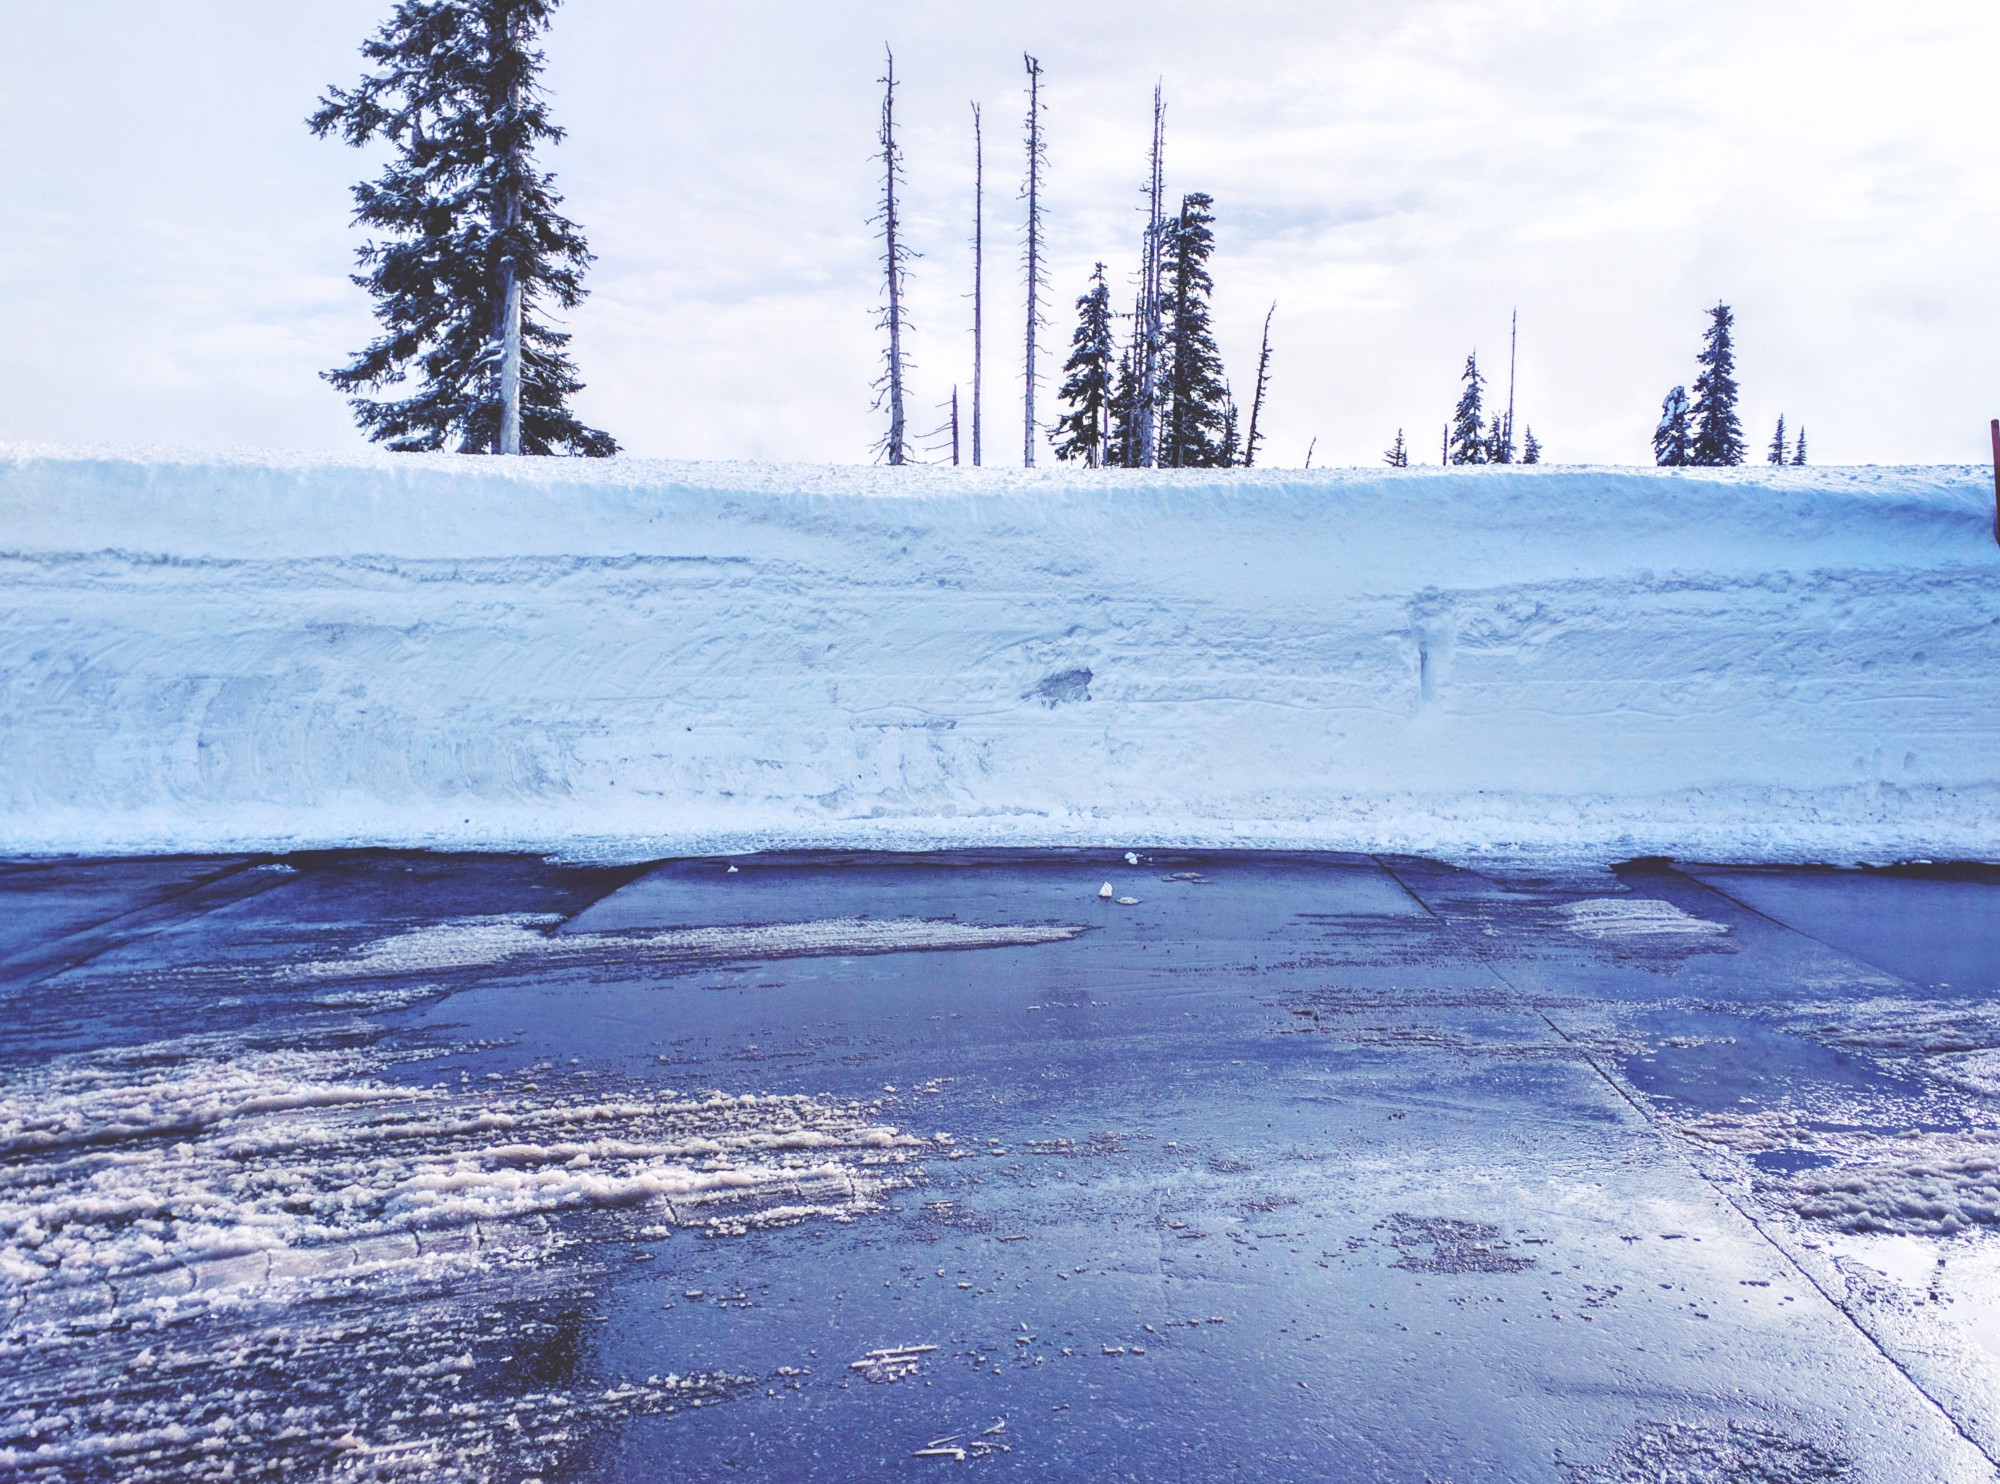 Height of the plowed snow on side of road